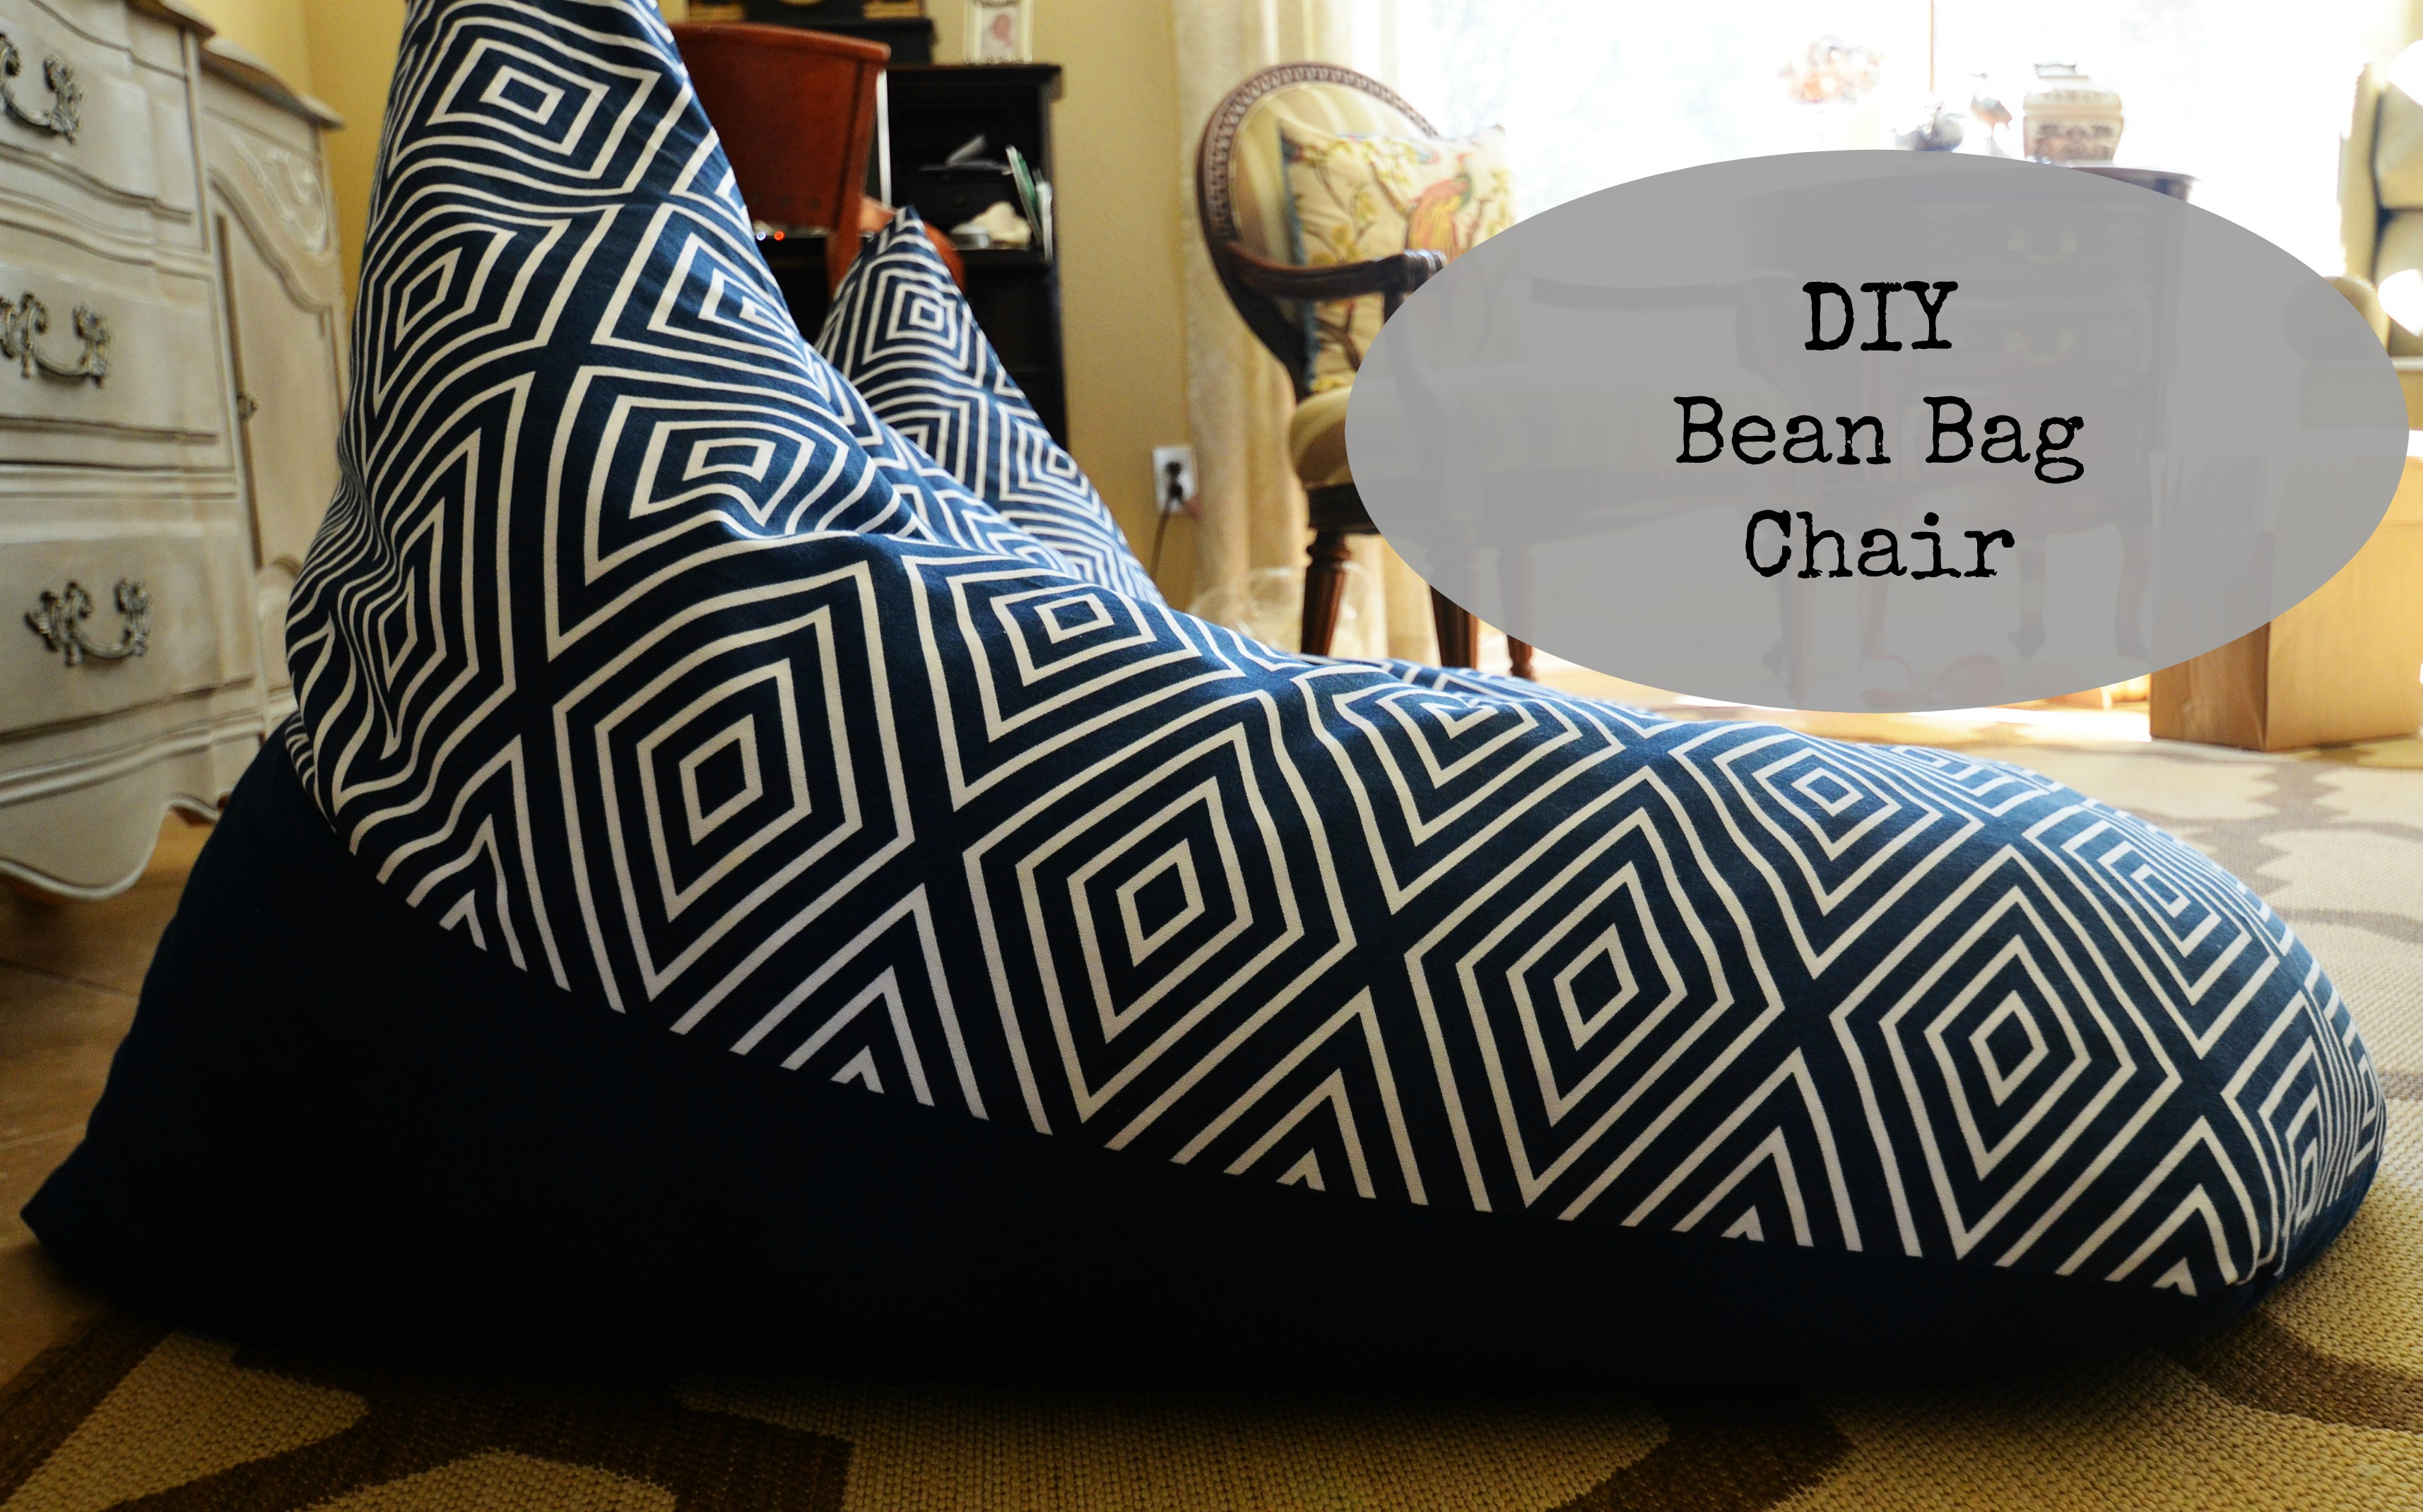 How to make bean bag chairs - After My Target Fiasco I Scoured The Internet Looking For Bean Bag Chairs That A Had A Slipcover And B Were Within Reason Since I Was Going To Be